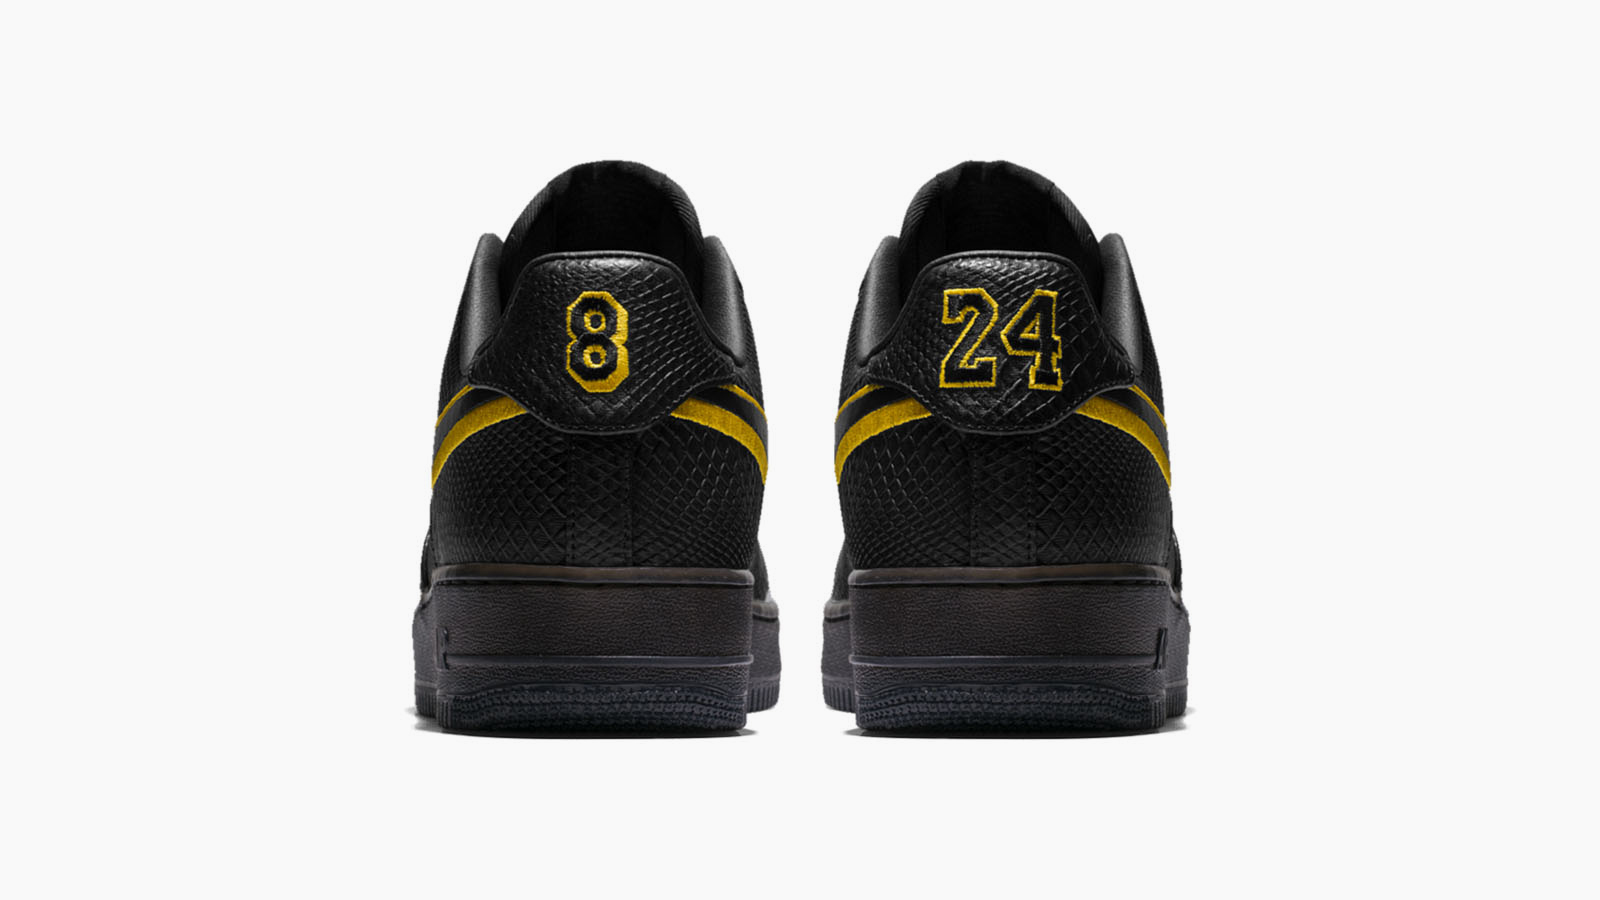 Kobe bryant black mamba air force 1 1